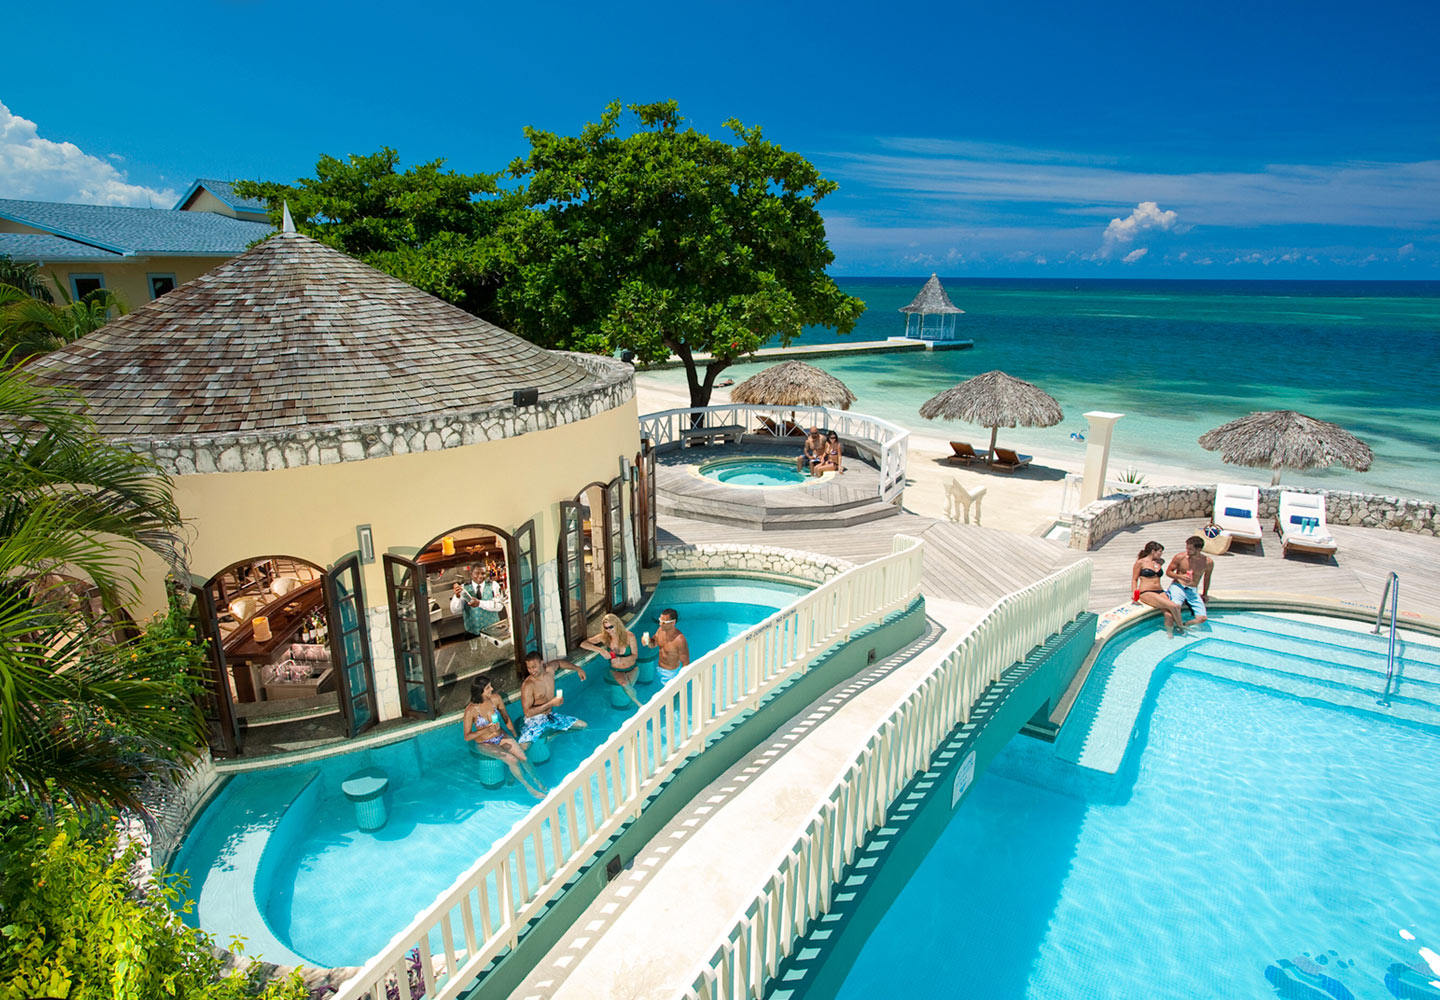 Best Sandals Resort: Which Sandals Resort is the Best? 2019 ... on island of jamaica map, negril jamaica map, montego bay jamaica map, lucea jamaica map, sandals carlyle jamaica map, sandals royal bahamian, sandals ocho rios jamaica, black river jamaica map, port royal jamaica map, sandals jamaica white house, st. ann jamaica map, st. elizabeth jamaica map, hilton rose hall jamaica map, dunn's river falls jamaica map, moon palace jamaica map, strawberry hill jamaica map, beaches ocho rios jamaica map, st. lucia and jamaica map, sandals grande riviera ocho rios map, grand palladium jamaica map,